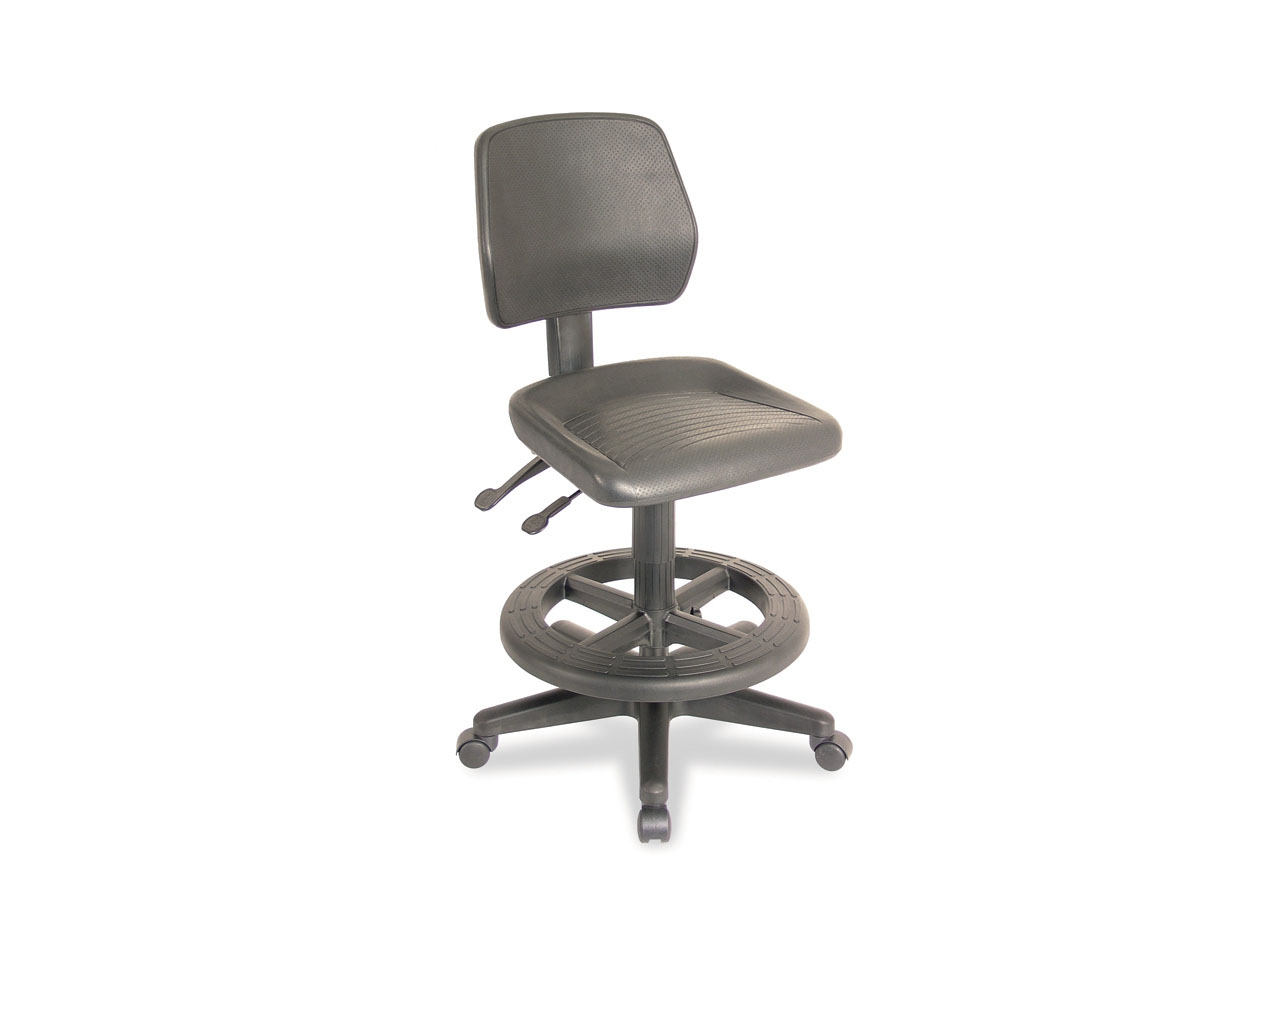 office chair kelowna extending round table and chairs seating ergonomic desk industrial drafting